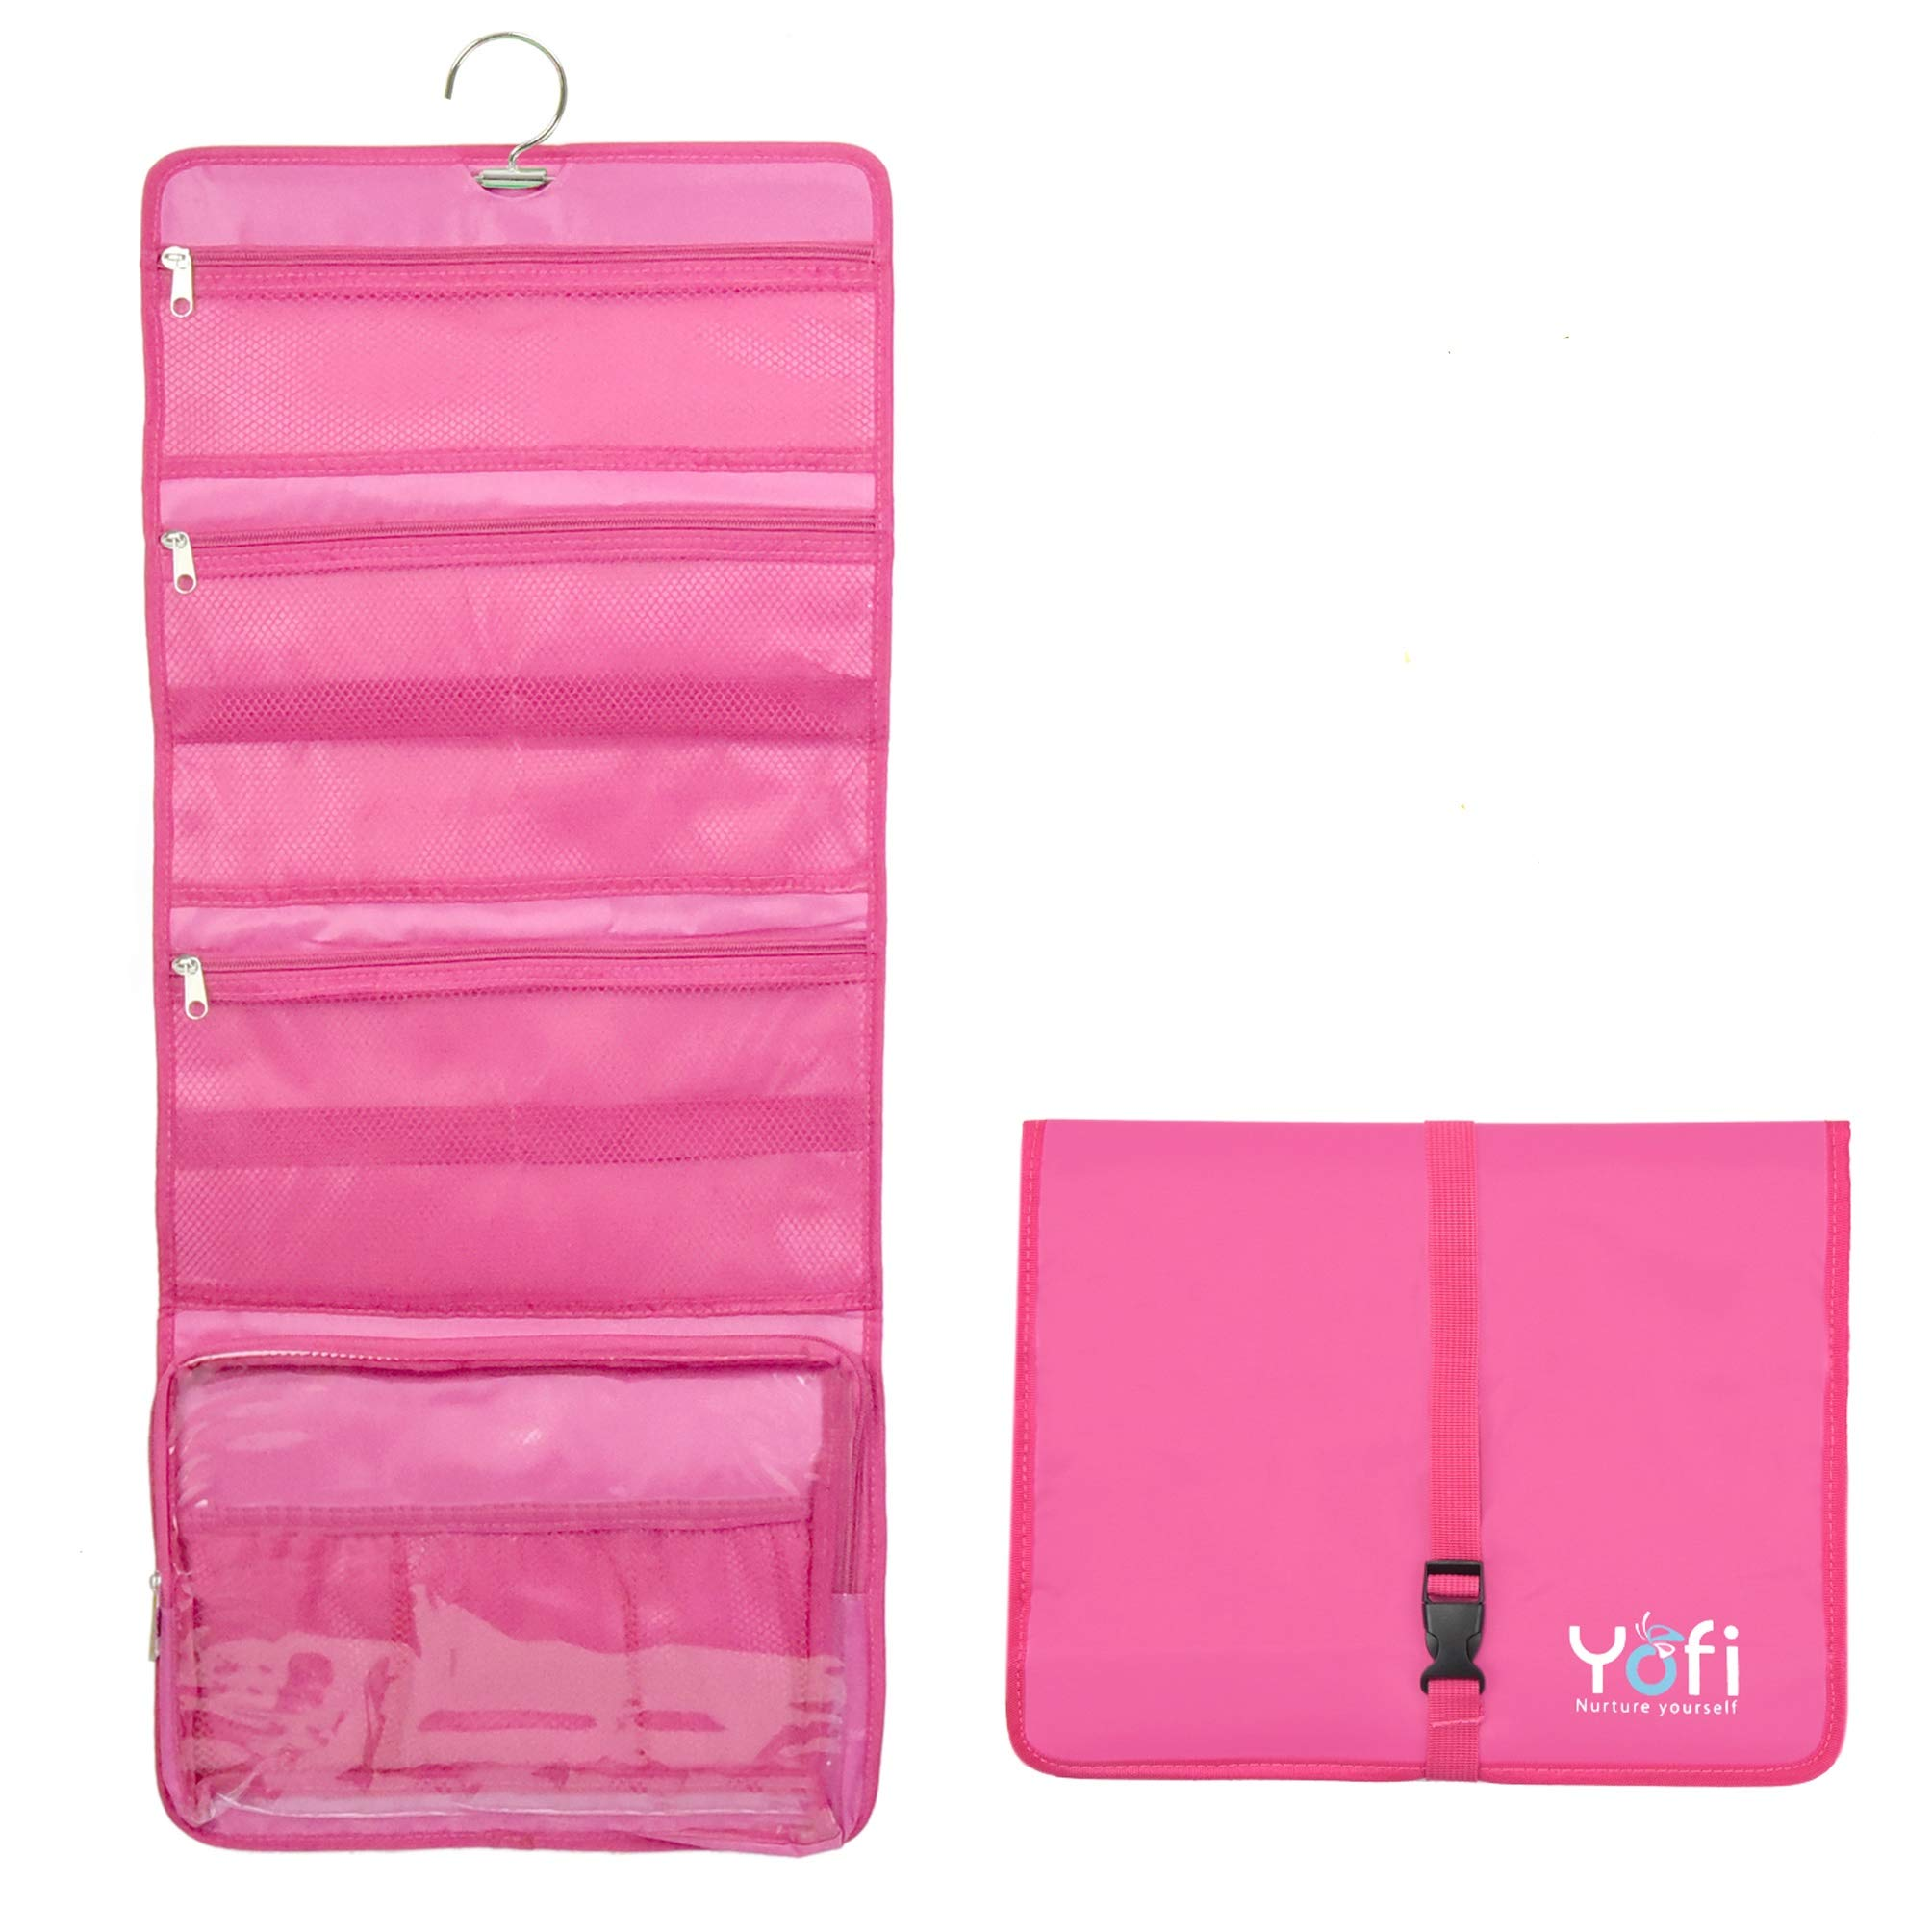 Hanging Toiletry Bag by Yofi Nurture Yourself: Organizer for Cosmetics, Makeup, Jewelry, Toiletries, Shaving Tools in Pink Expandable, Polyester Case with Zippers and Sections for Home or Traveling